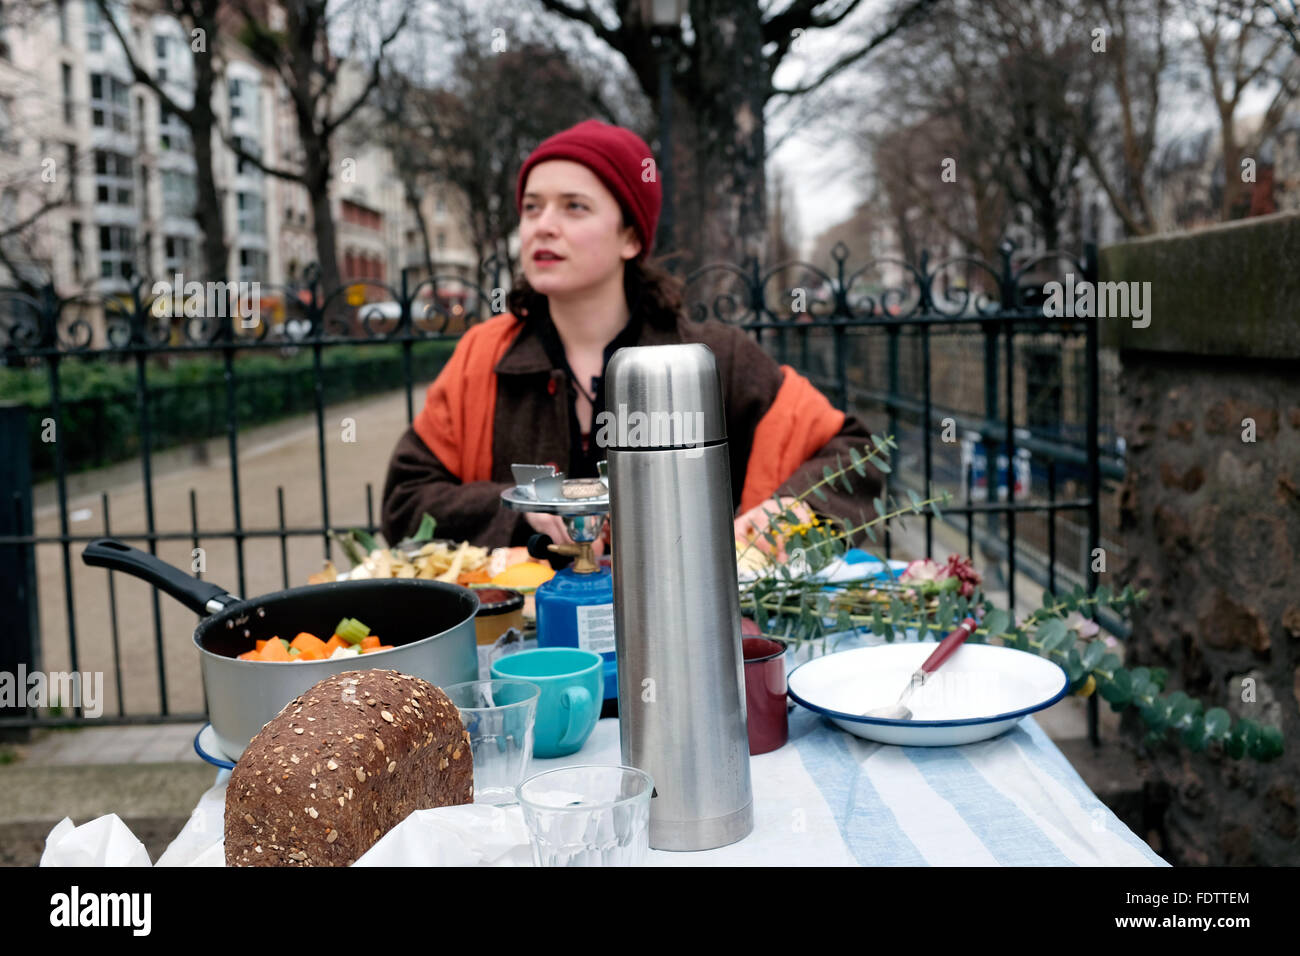 When Elsa is not working within the French film industry she can be found cooking soup and making tea on the streets - Stock Image